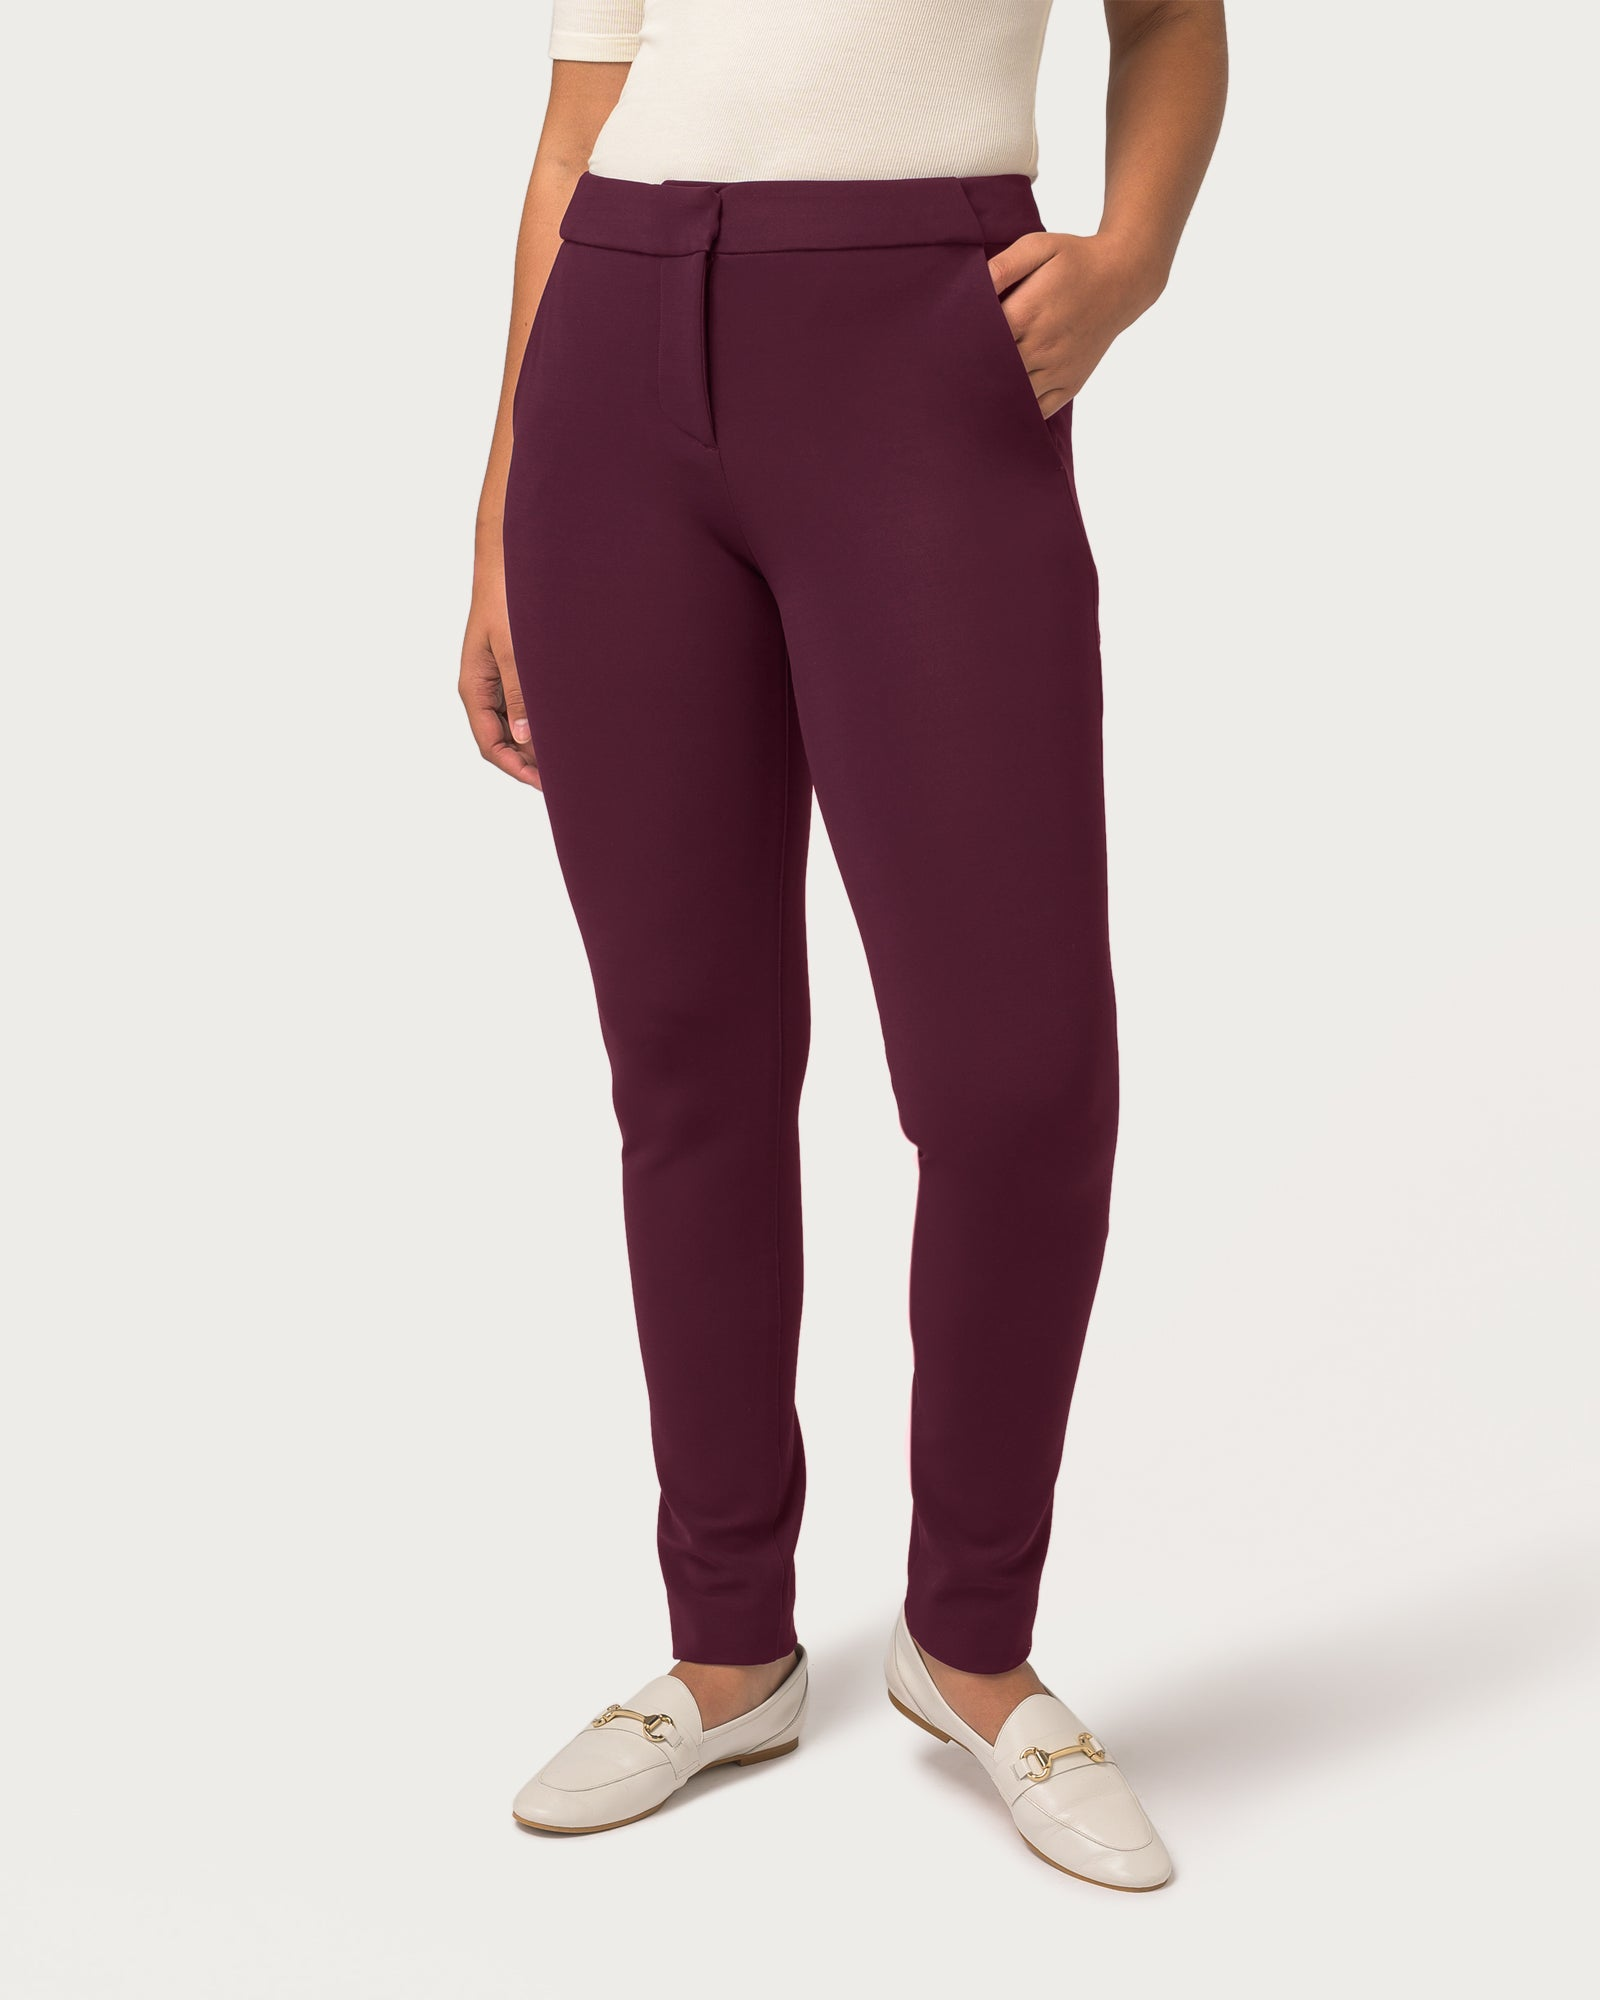 Power Move Trousers Plum 2.0